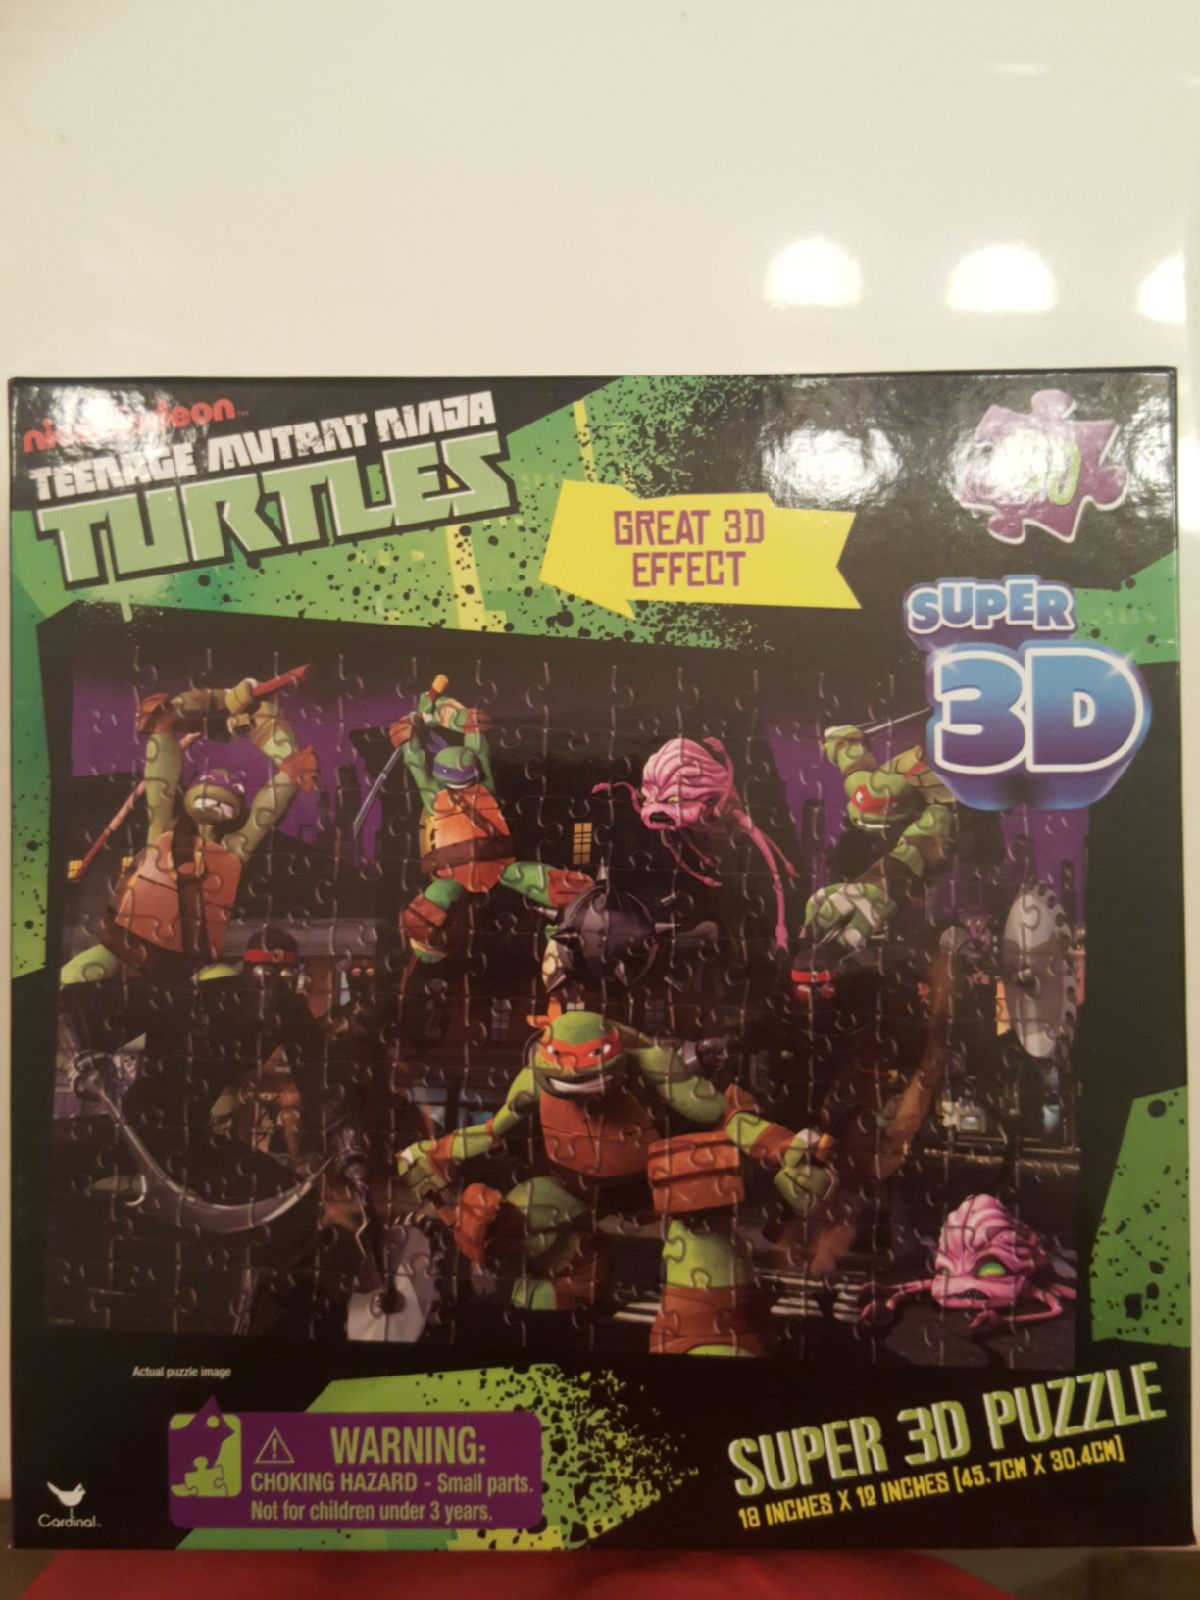 Super 3D Puzzle Ninja Turtles